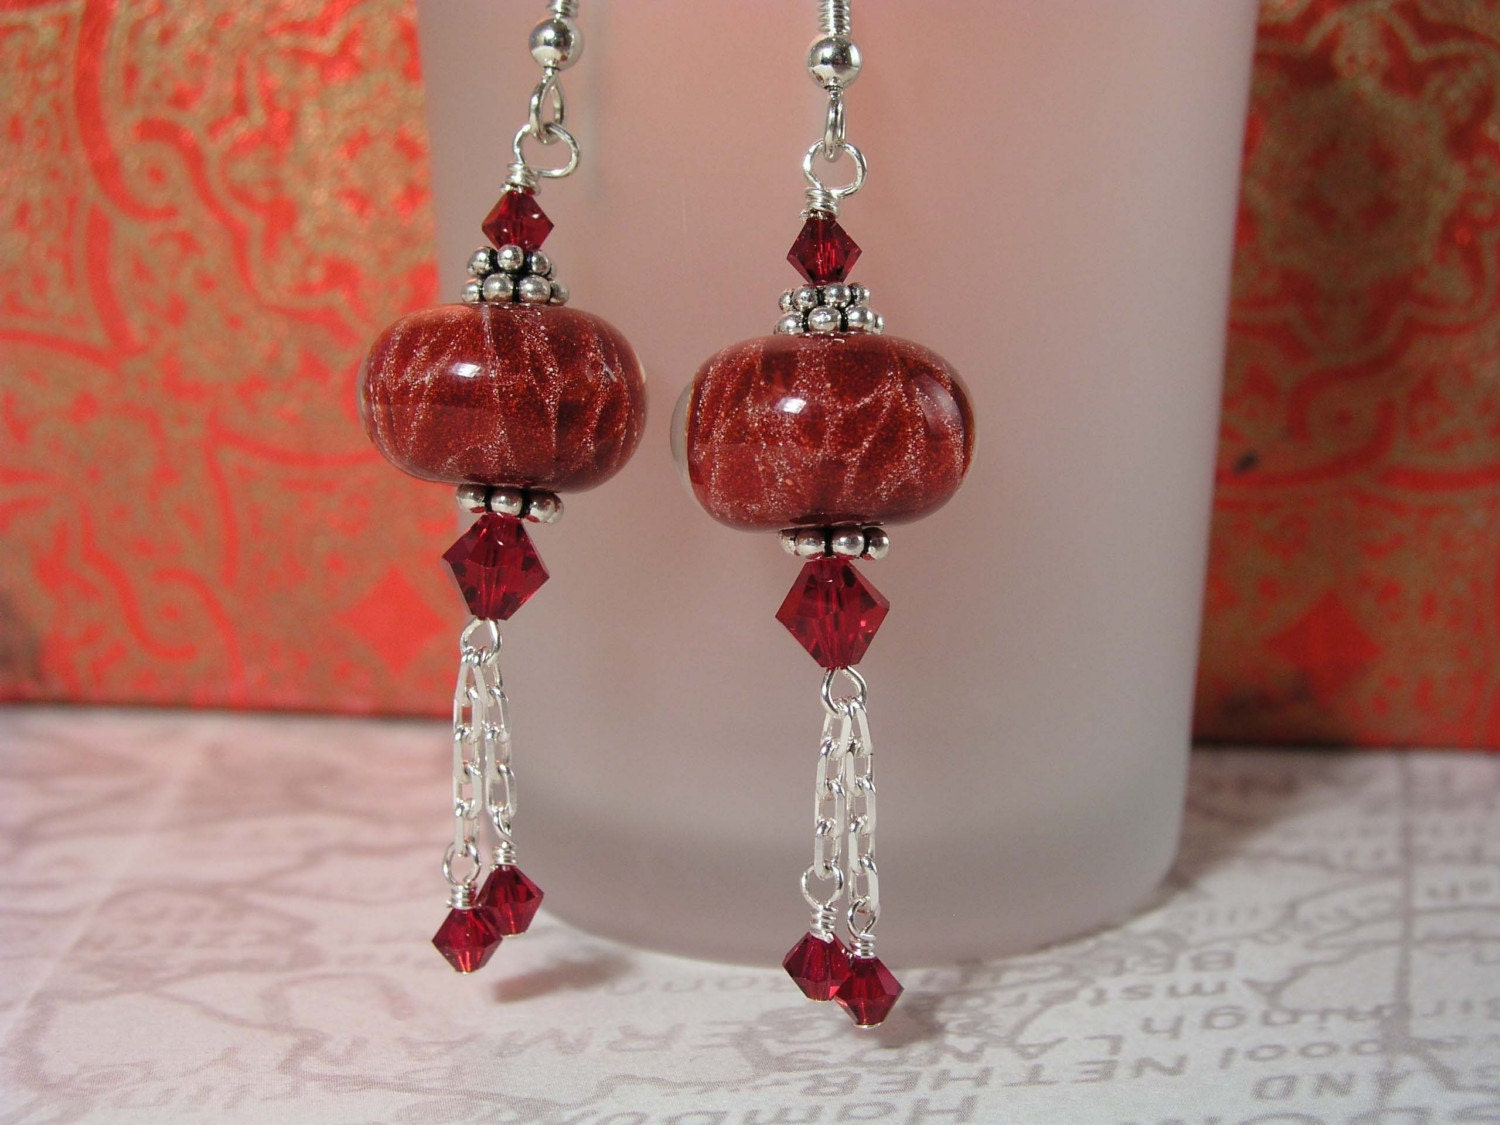 GALLAXY..Artisan Lampwork Beads, Sterling Silver Chain, Bali, Swarovski Crystals, and Sterling Silver Earrings